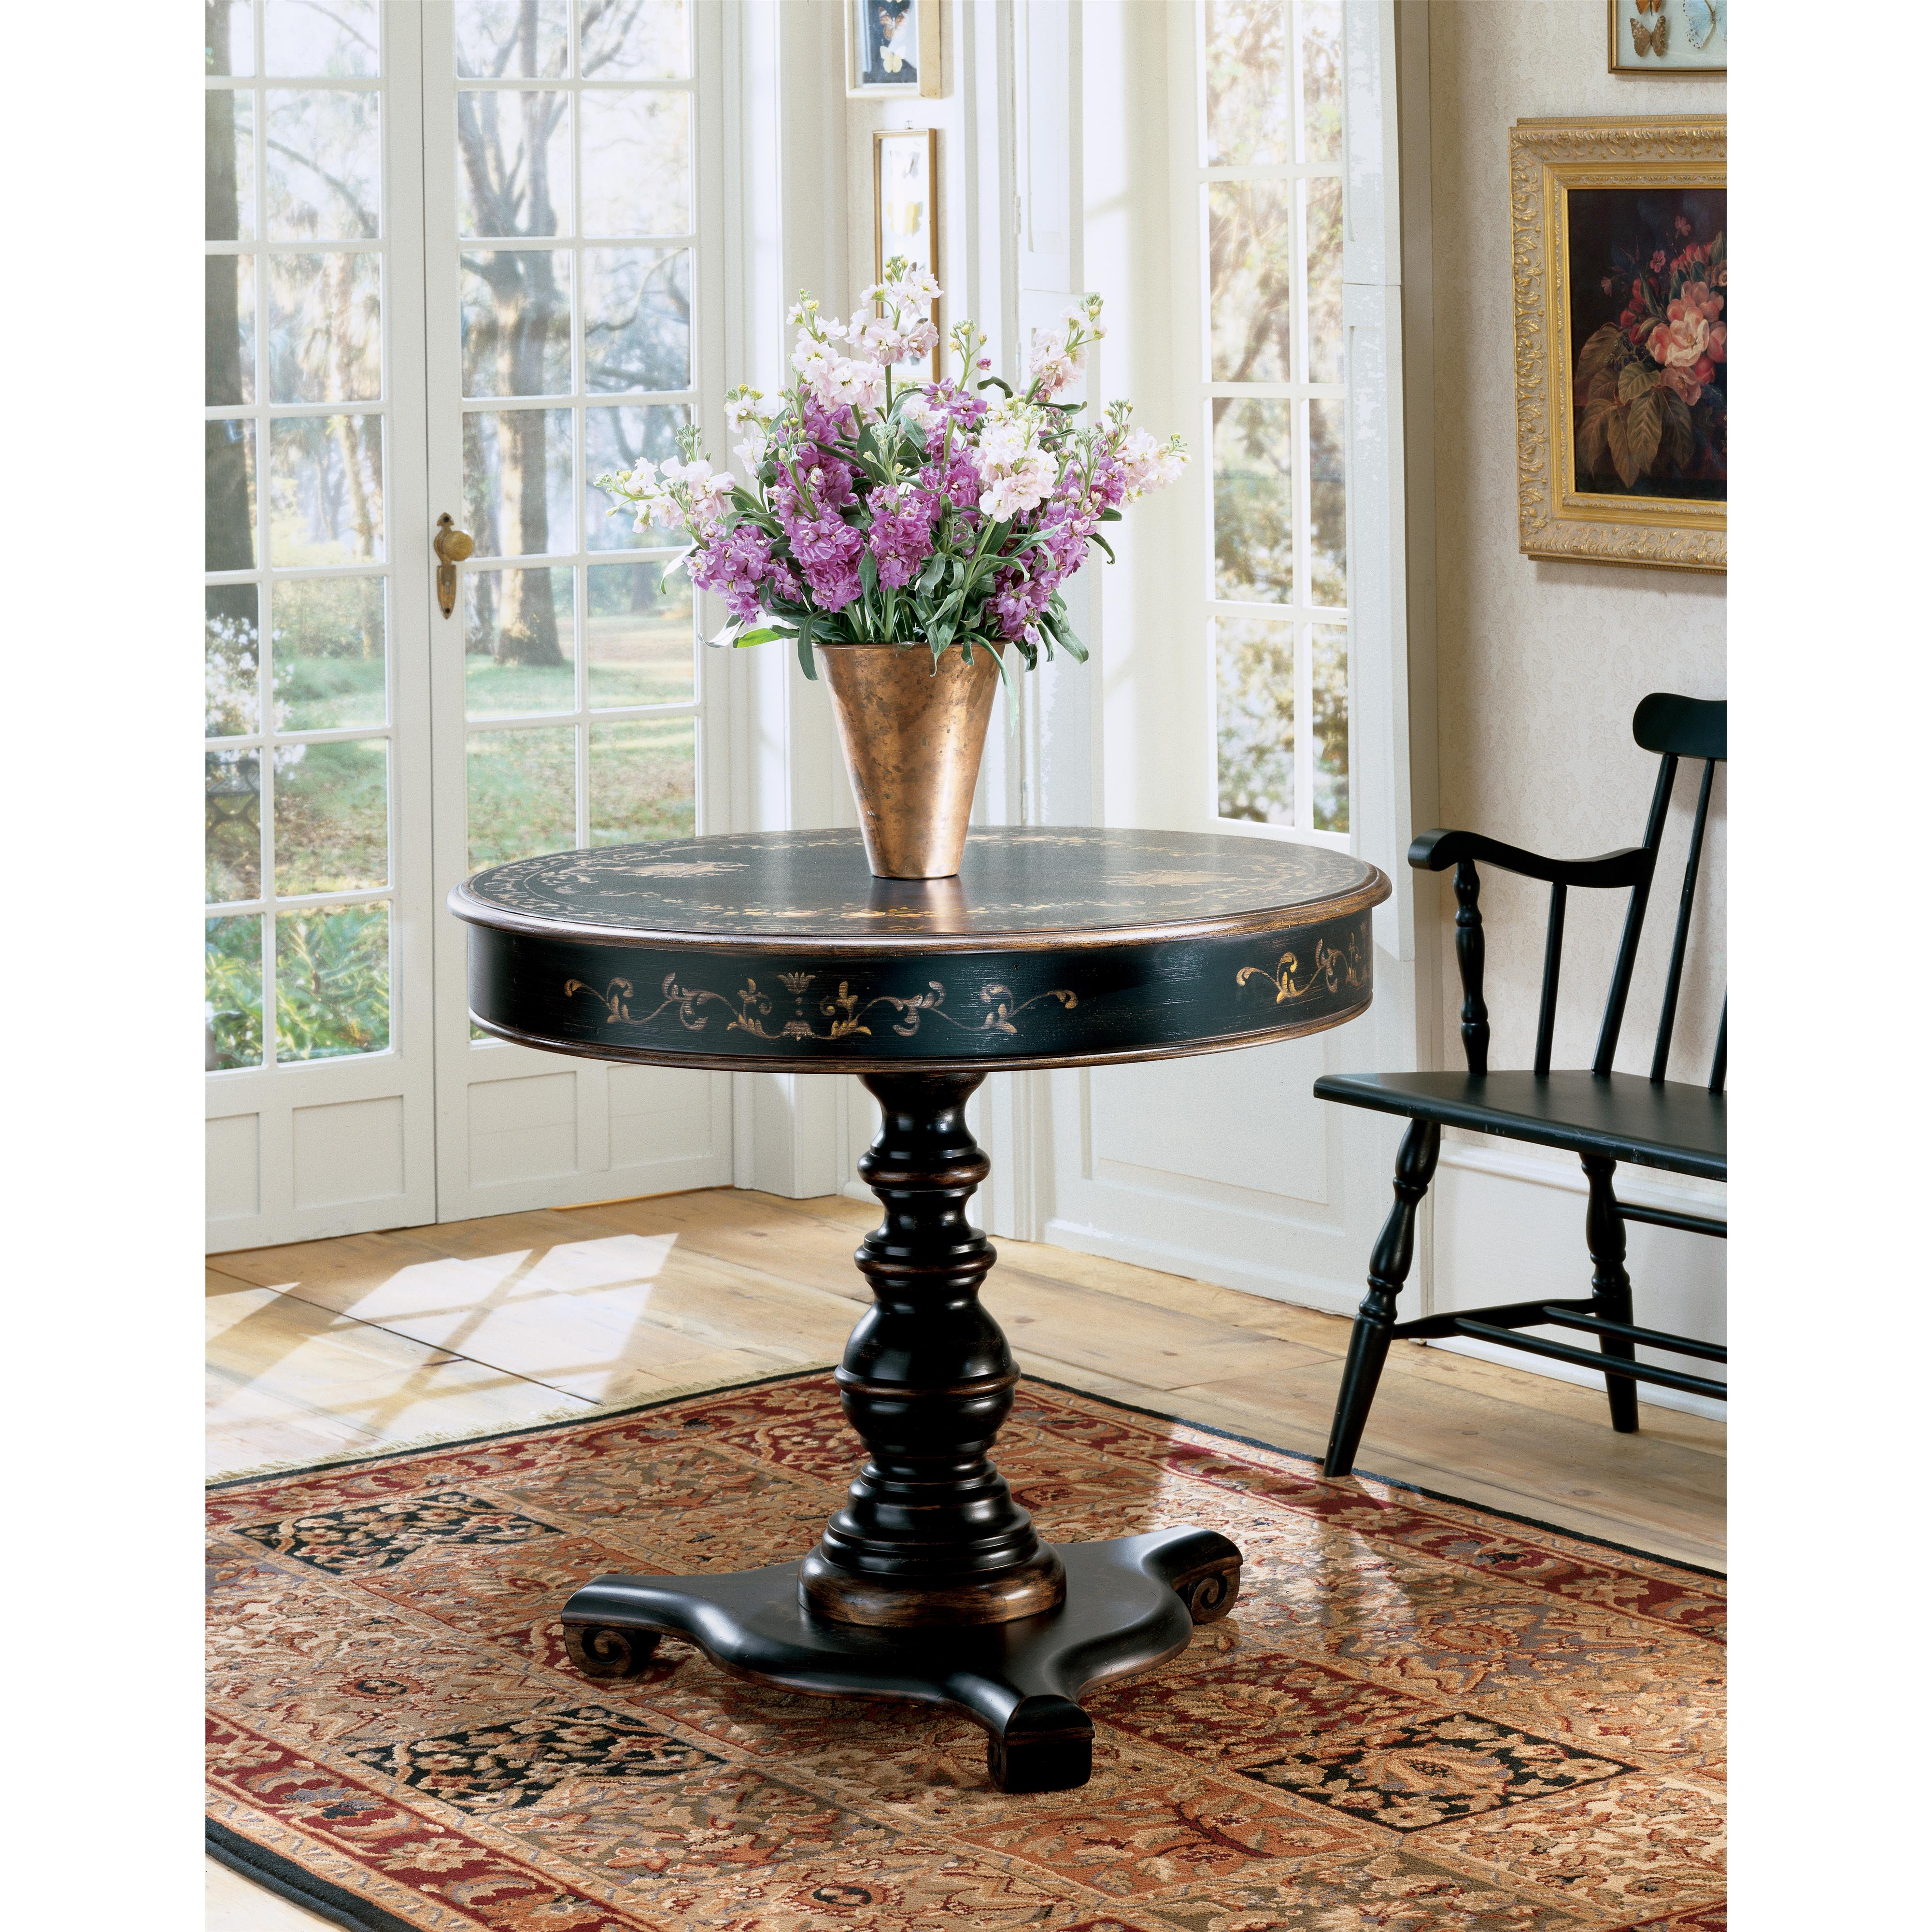 Butler Specialty Company Artist's Originals Accent Hall Table - Item Number: 563069